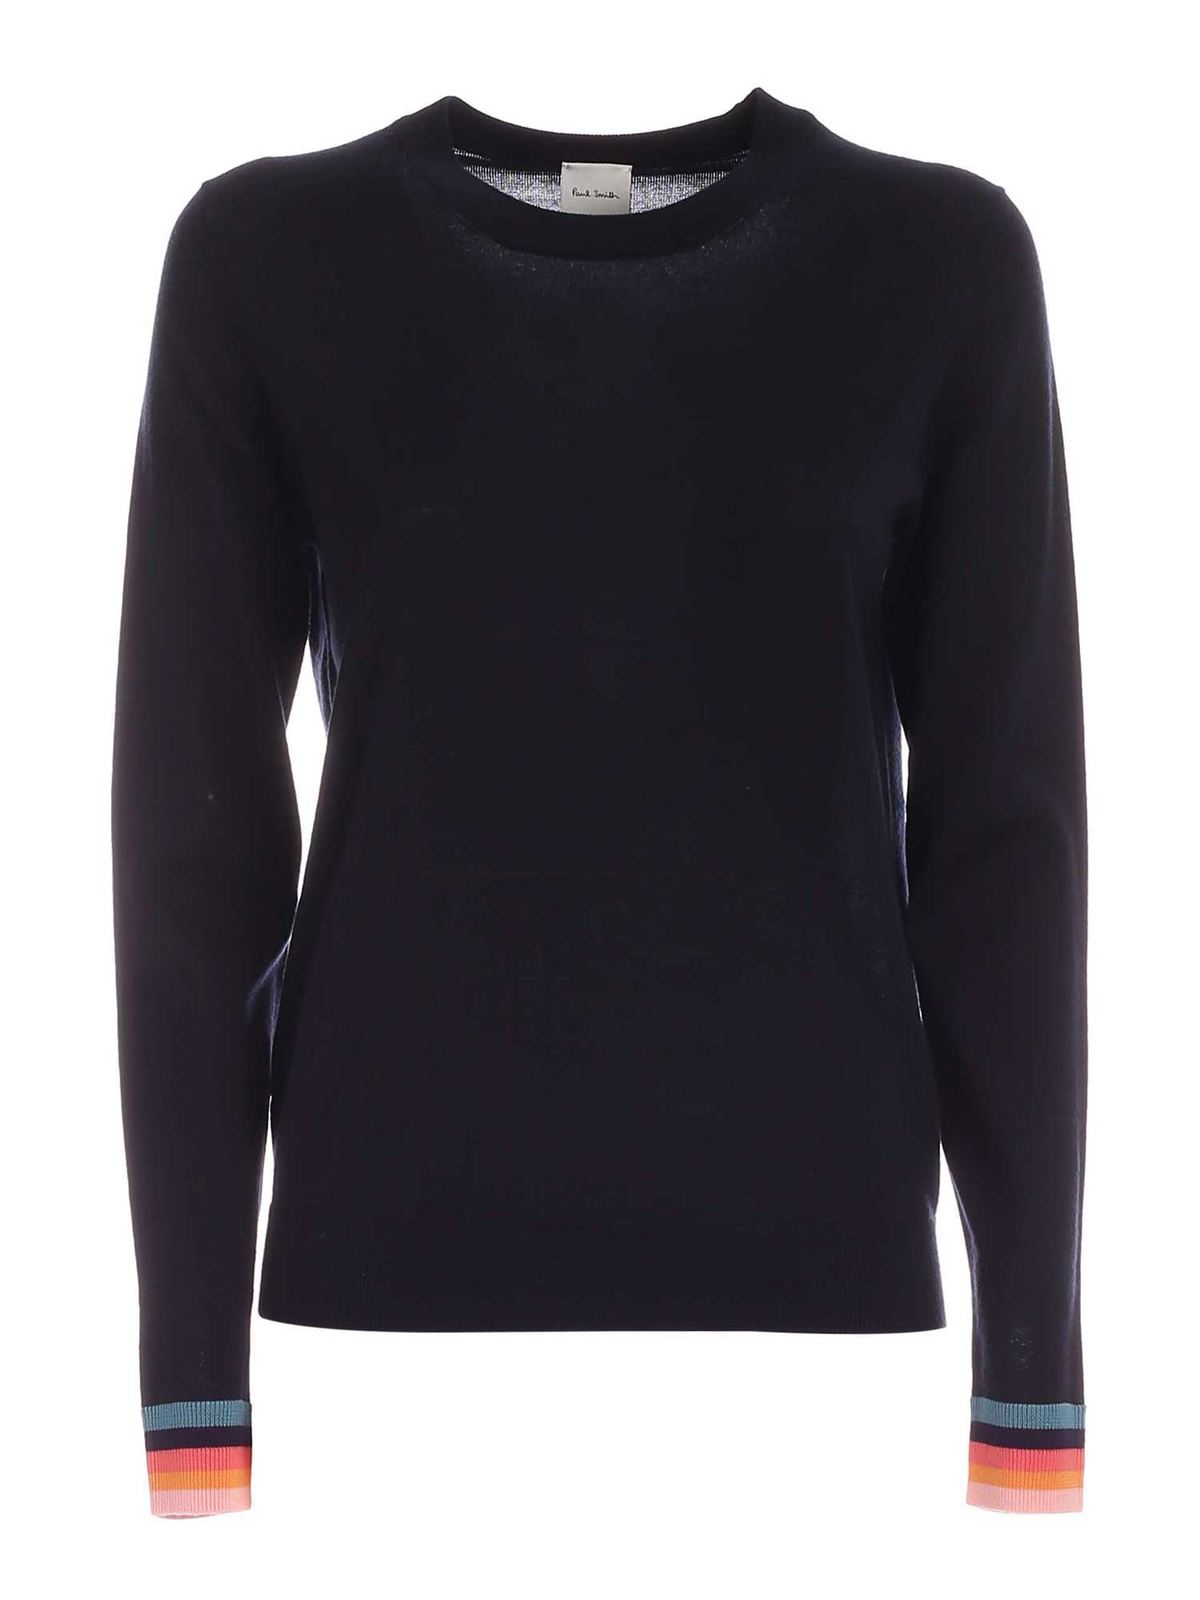 Paul Smith MULTICOLOR EDGES PULLOVER IN DARK BLUE